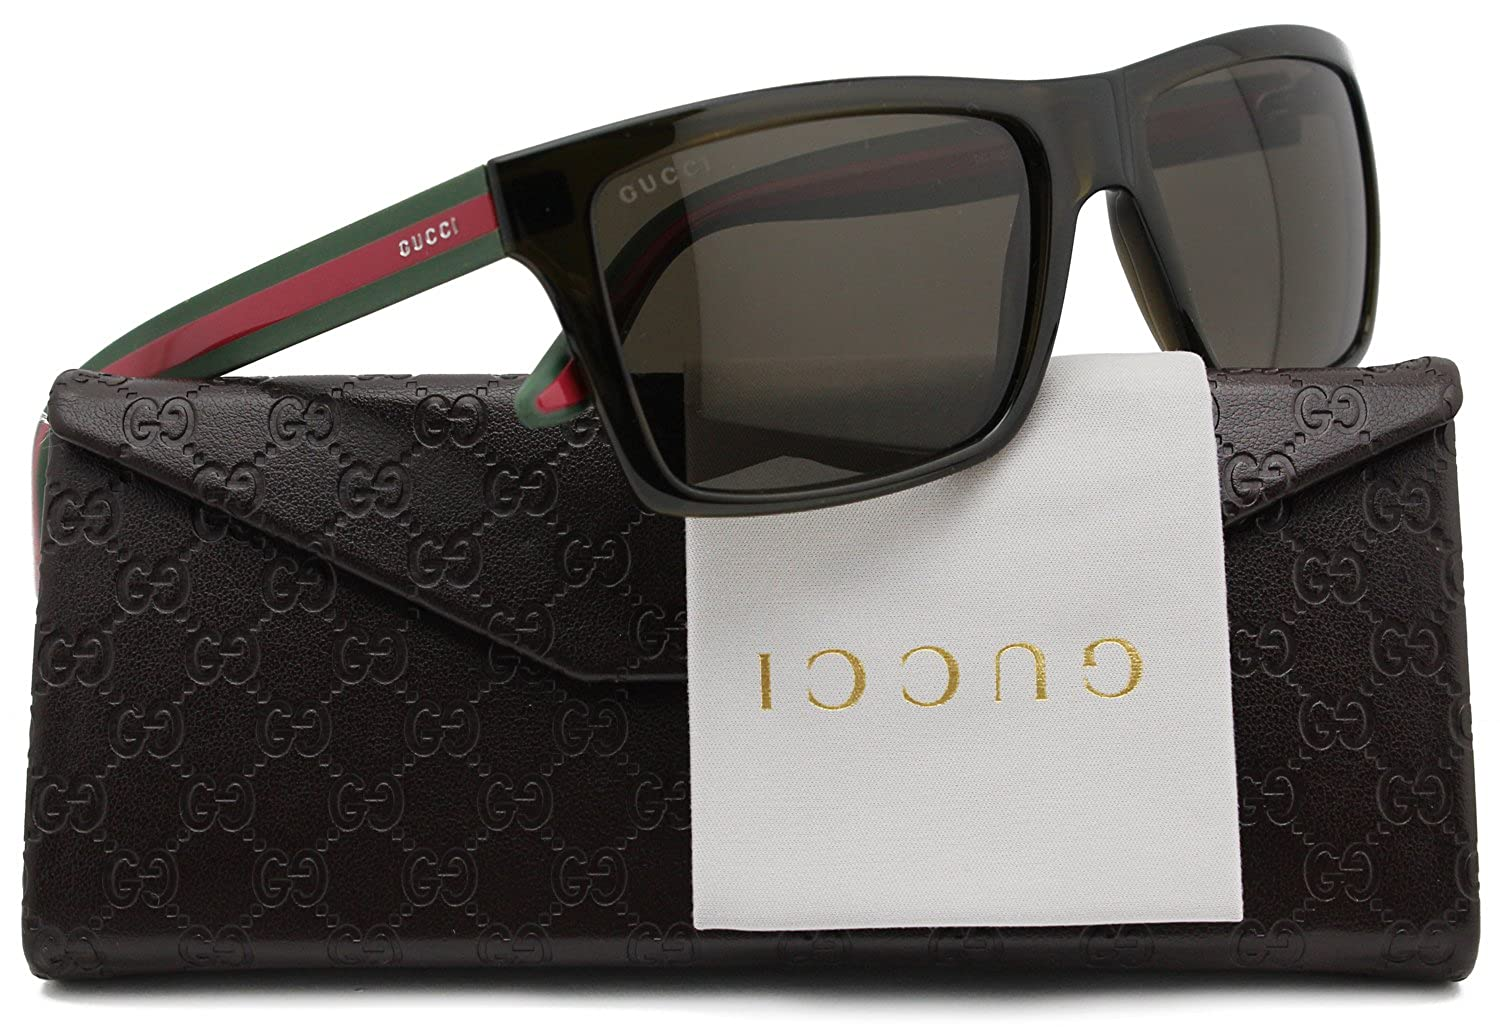 9ab9bf05b26 GUCCI GG1013 S Polarized Sunglasses Brown w Crystal Brown (053U) 1013 53U SP  56mm Authentic  Amazon.co.uk  Clothing